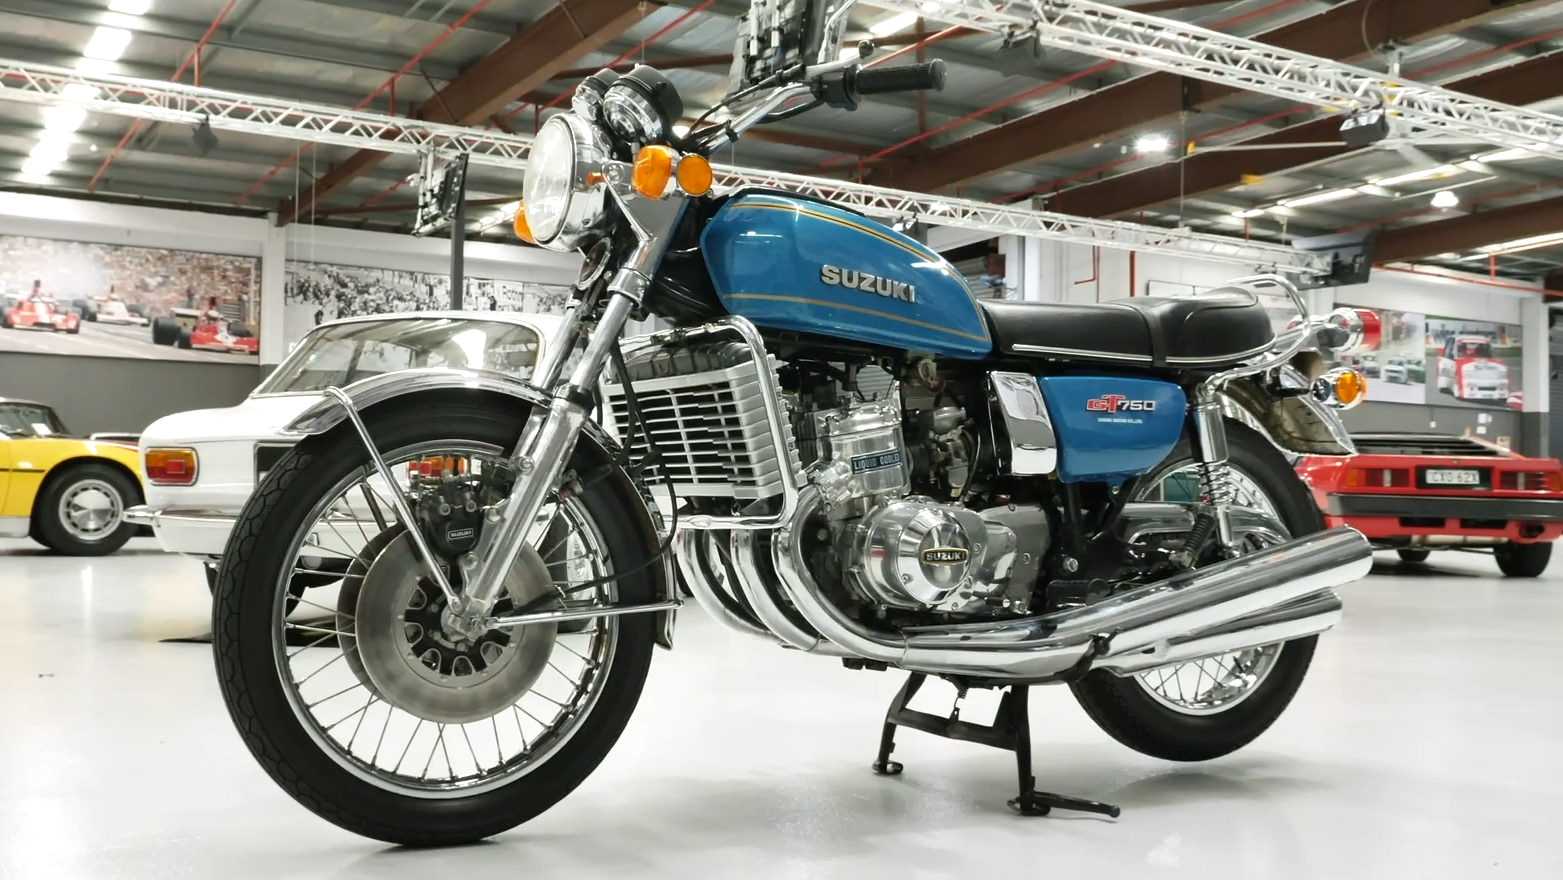 1976 Suzuki GT750A Motorcycle - 2021 Shannons Summer Timed Online Auction